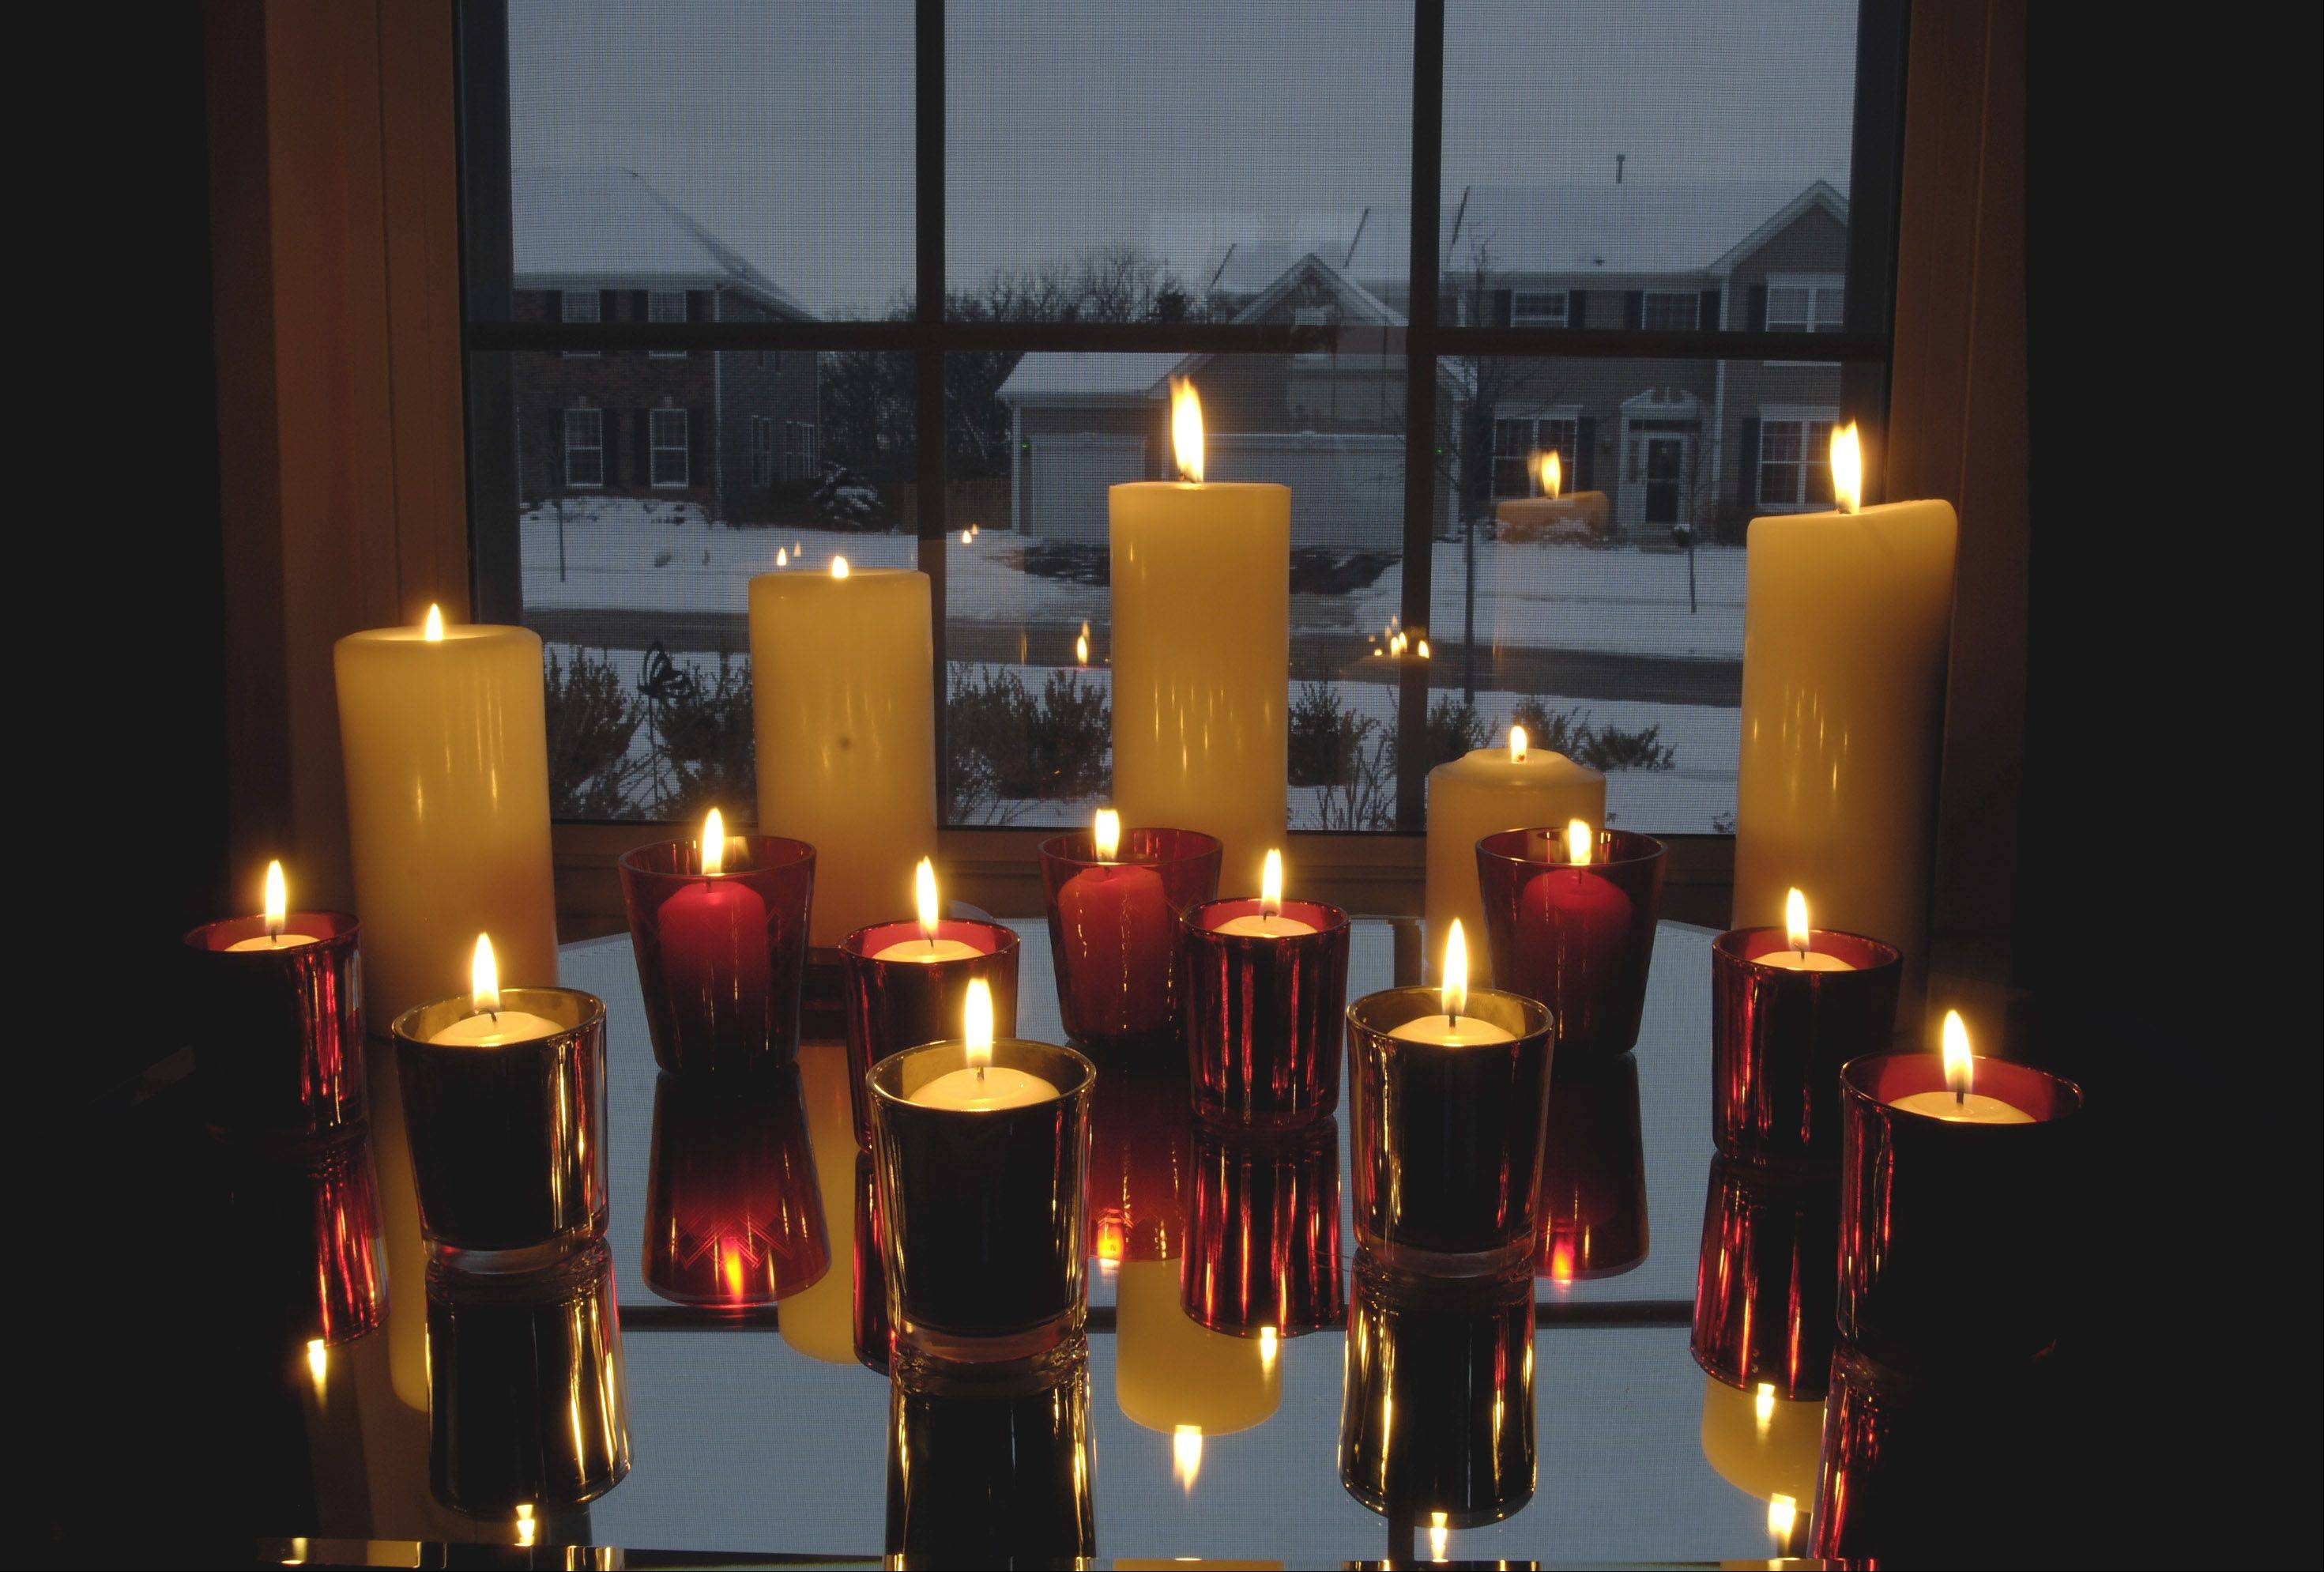 Although the days will begin growing longer after Dec. 21, candles are a good way to light up the early winter evenings.